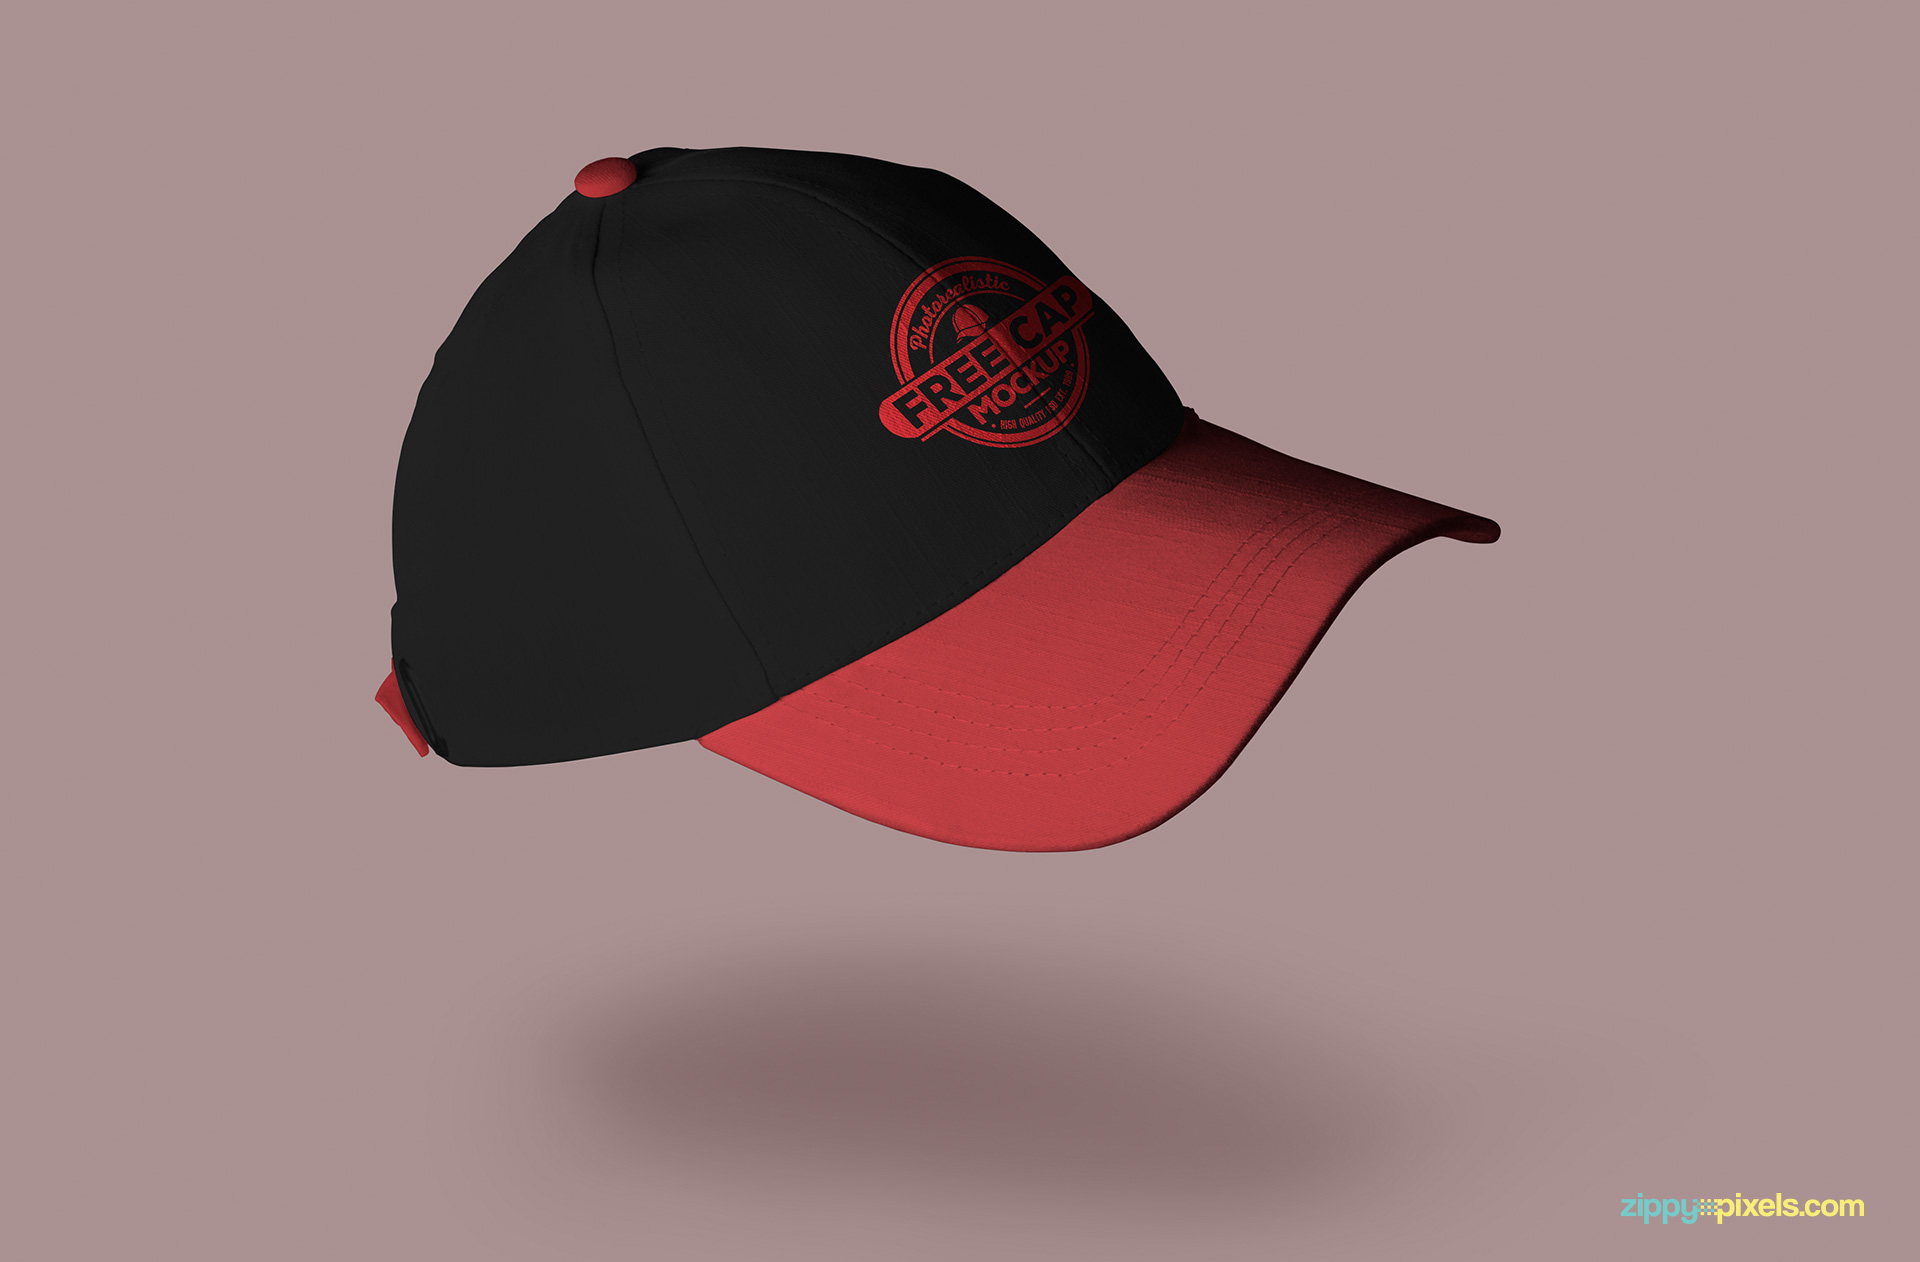 Cap mockup with 2 logo design options.